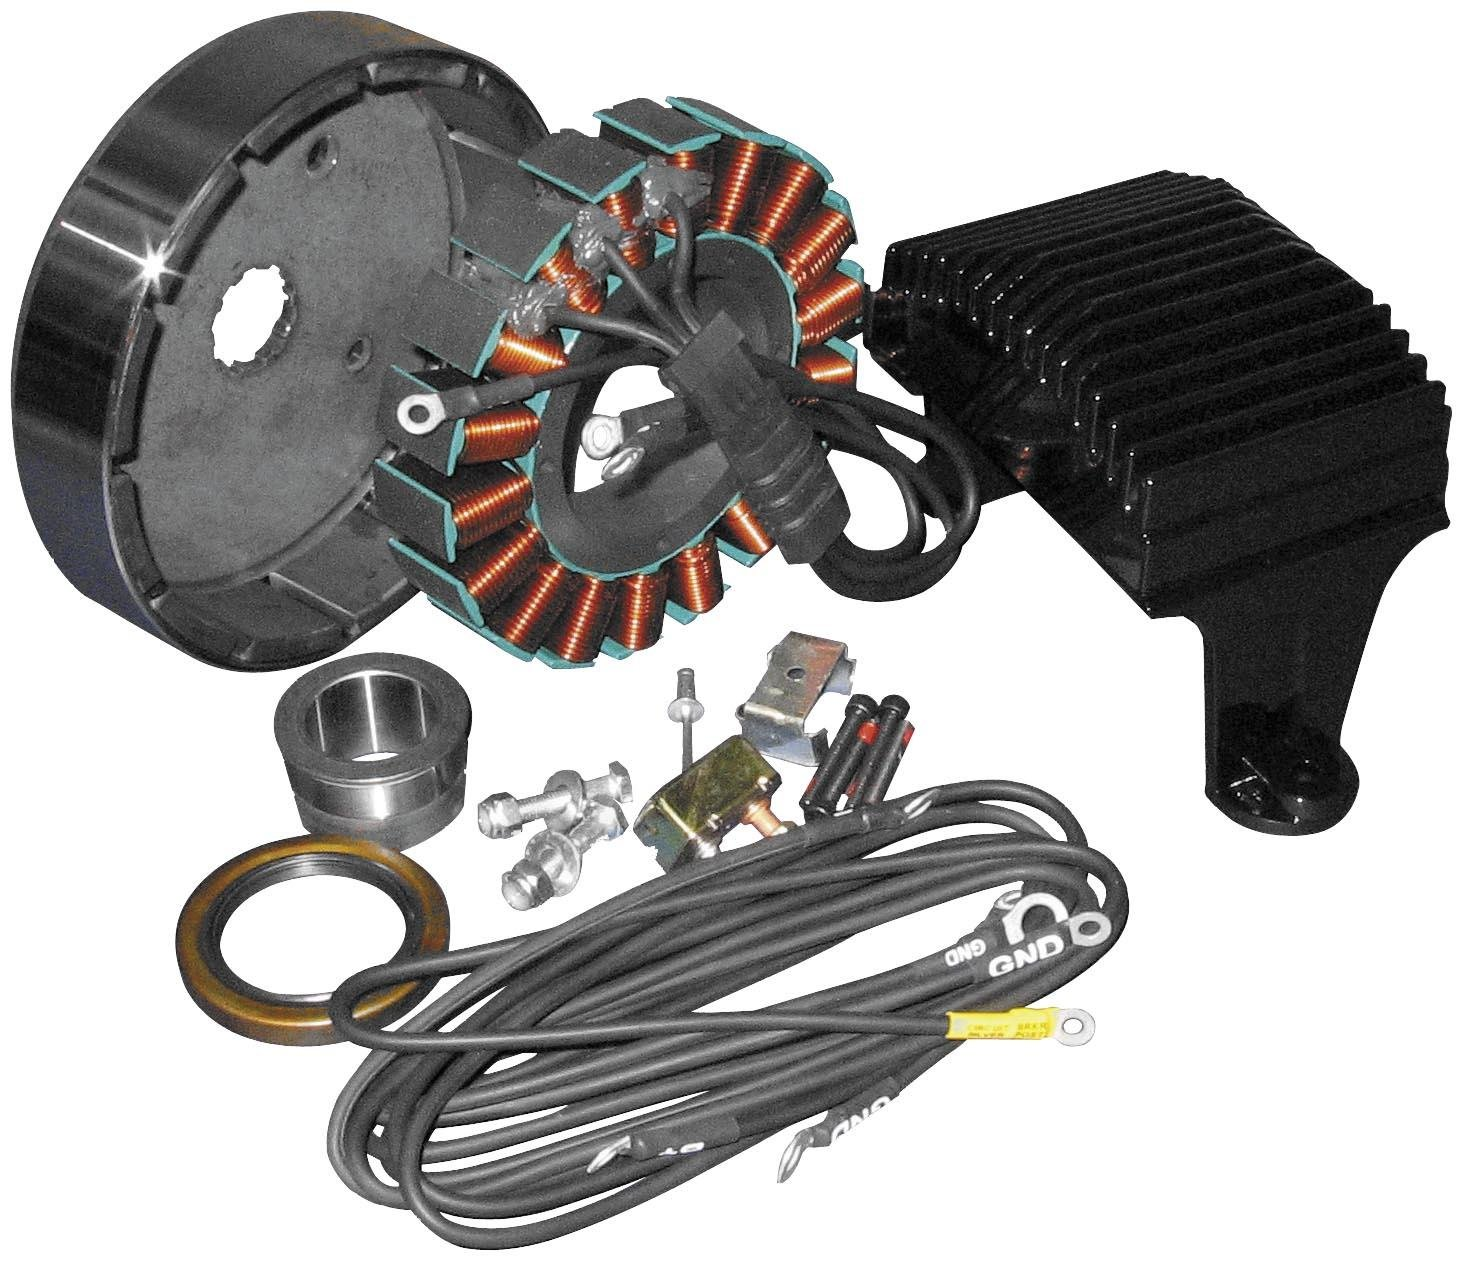 Harley 3 Wire Stator Wiring Simple Diagram Amazon Com Cycle Electric Ce 8011 Automotive 4 Transmitter